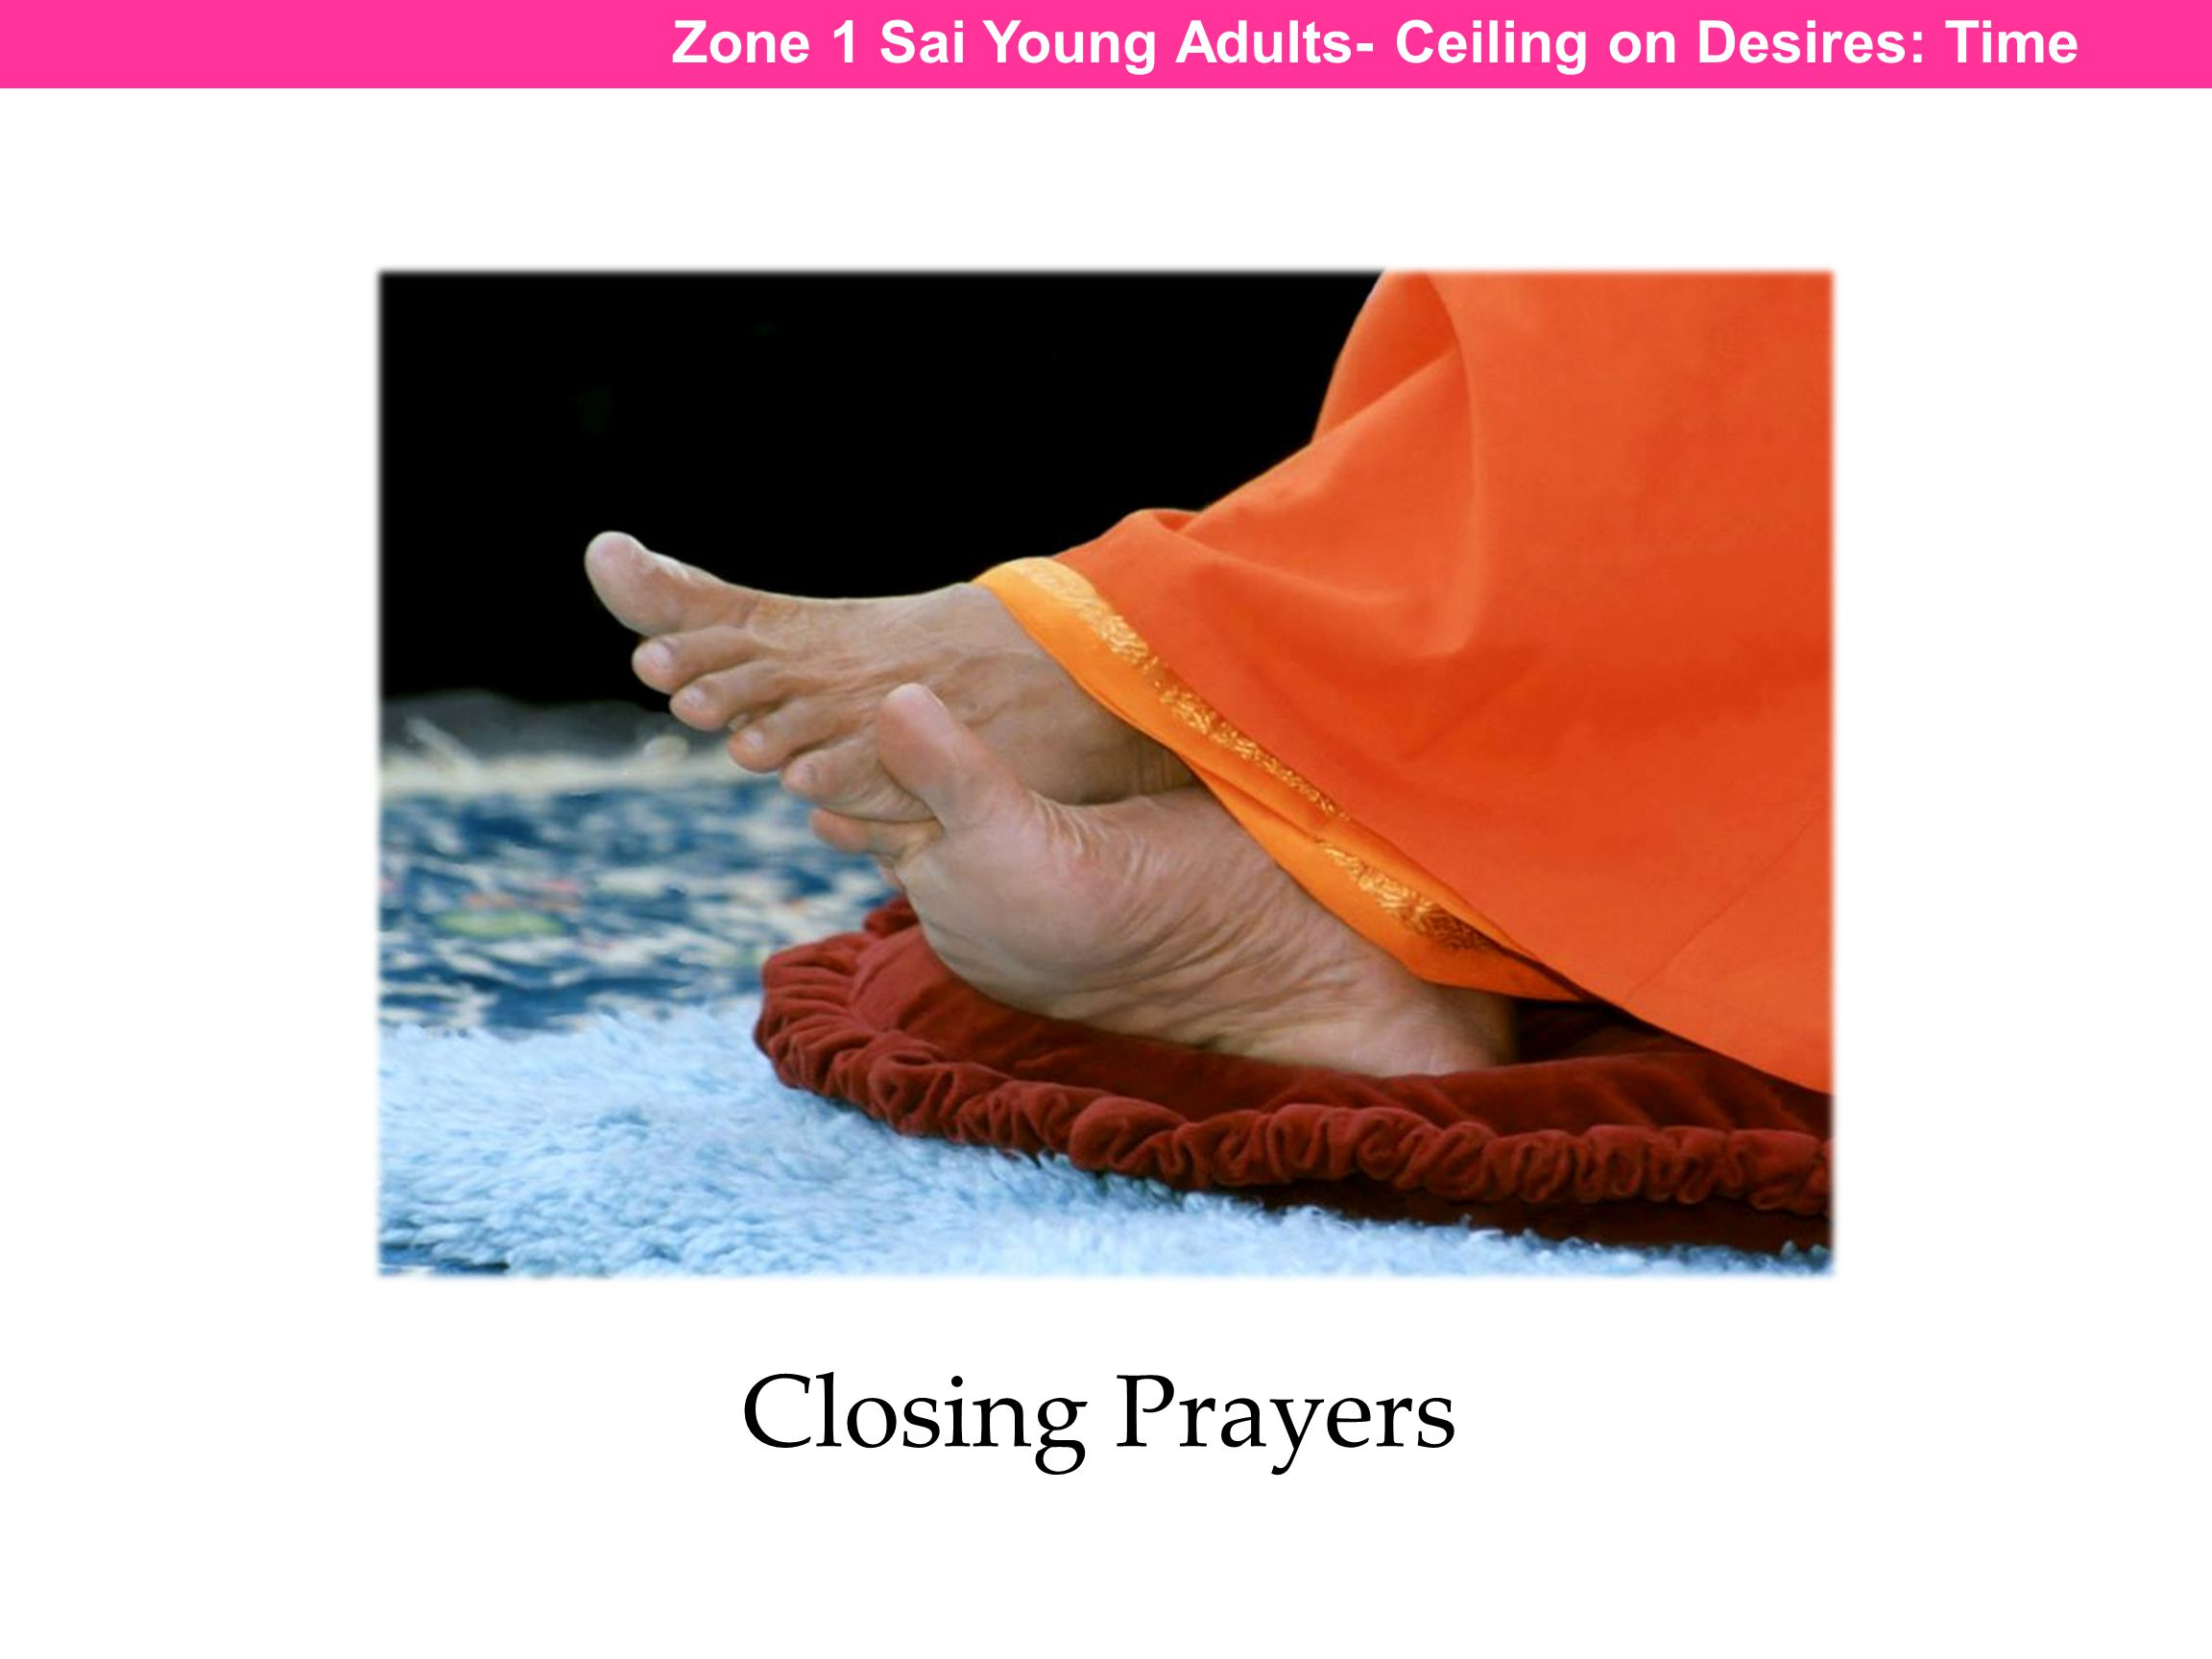 Zone 1 Sai Young Adults- Ceiling on Desires: Time